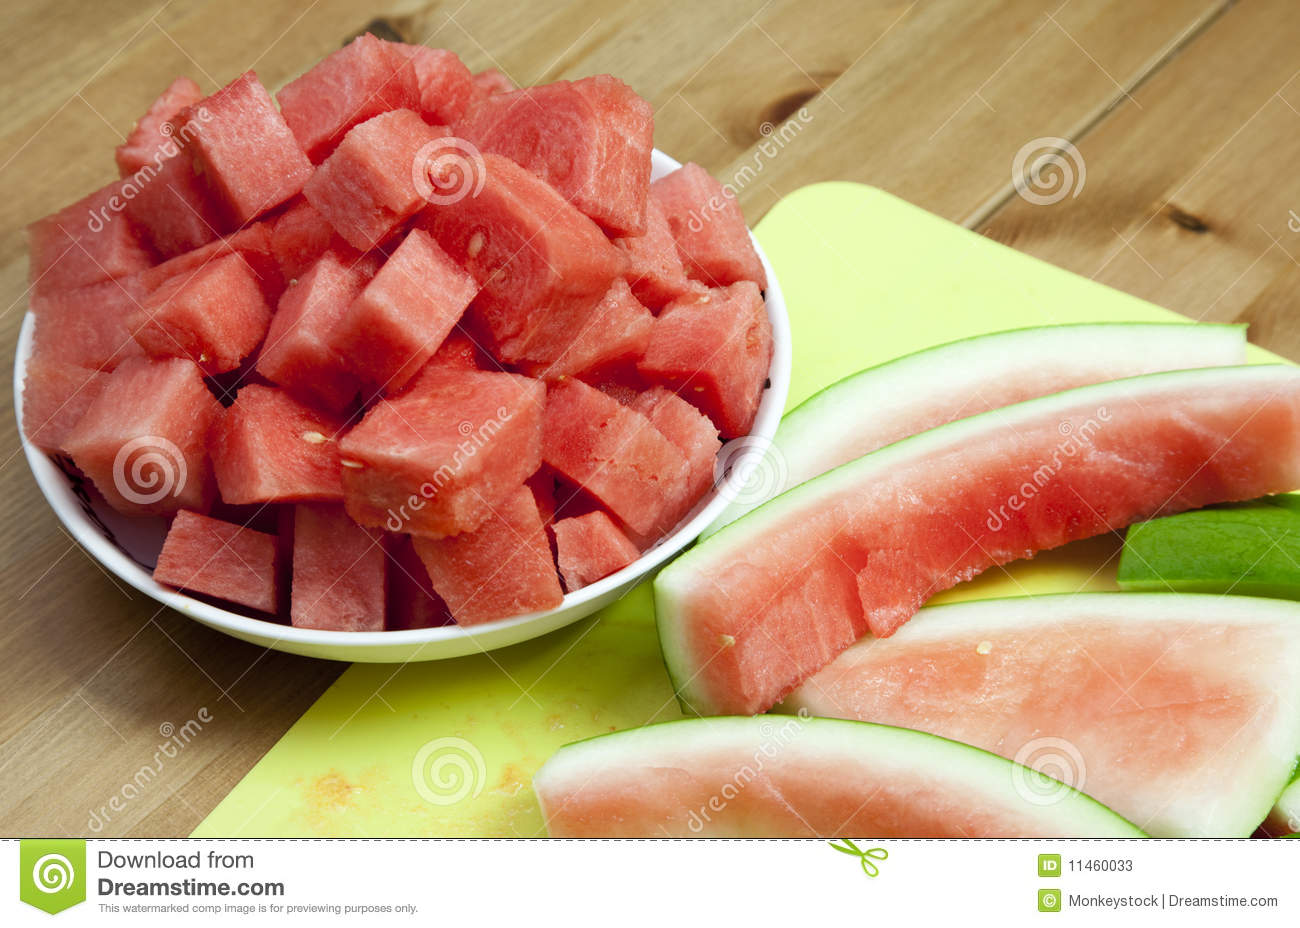 Watermelon and rind